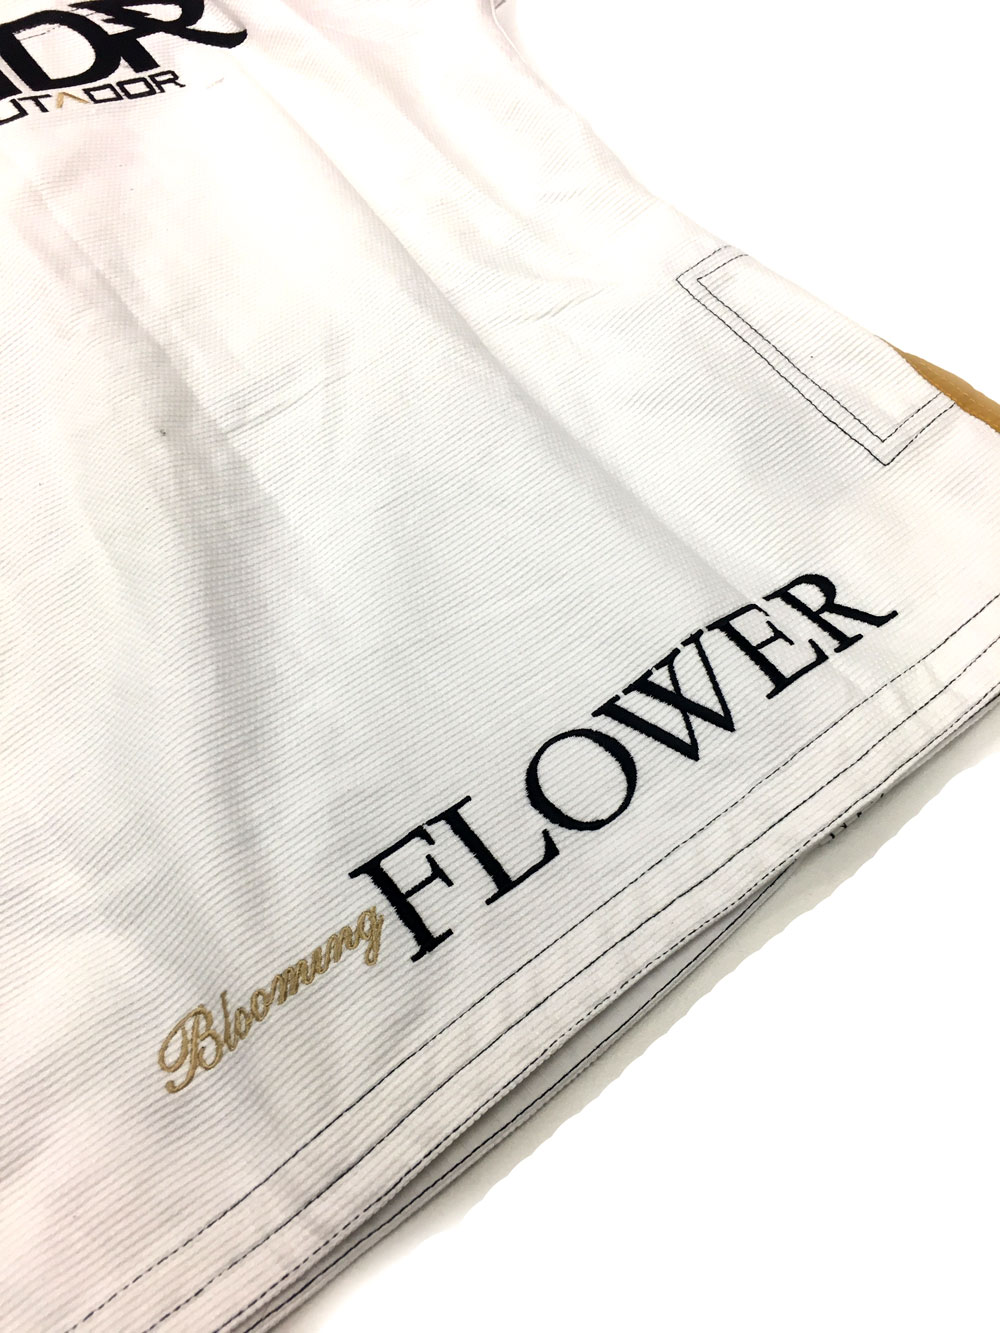 FLOWER×LUTADOR JIU-JITSU GI 1910 BLOOMING FLOWER